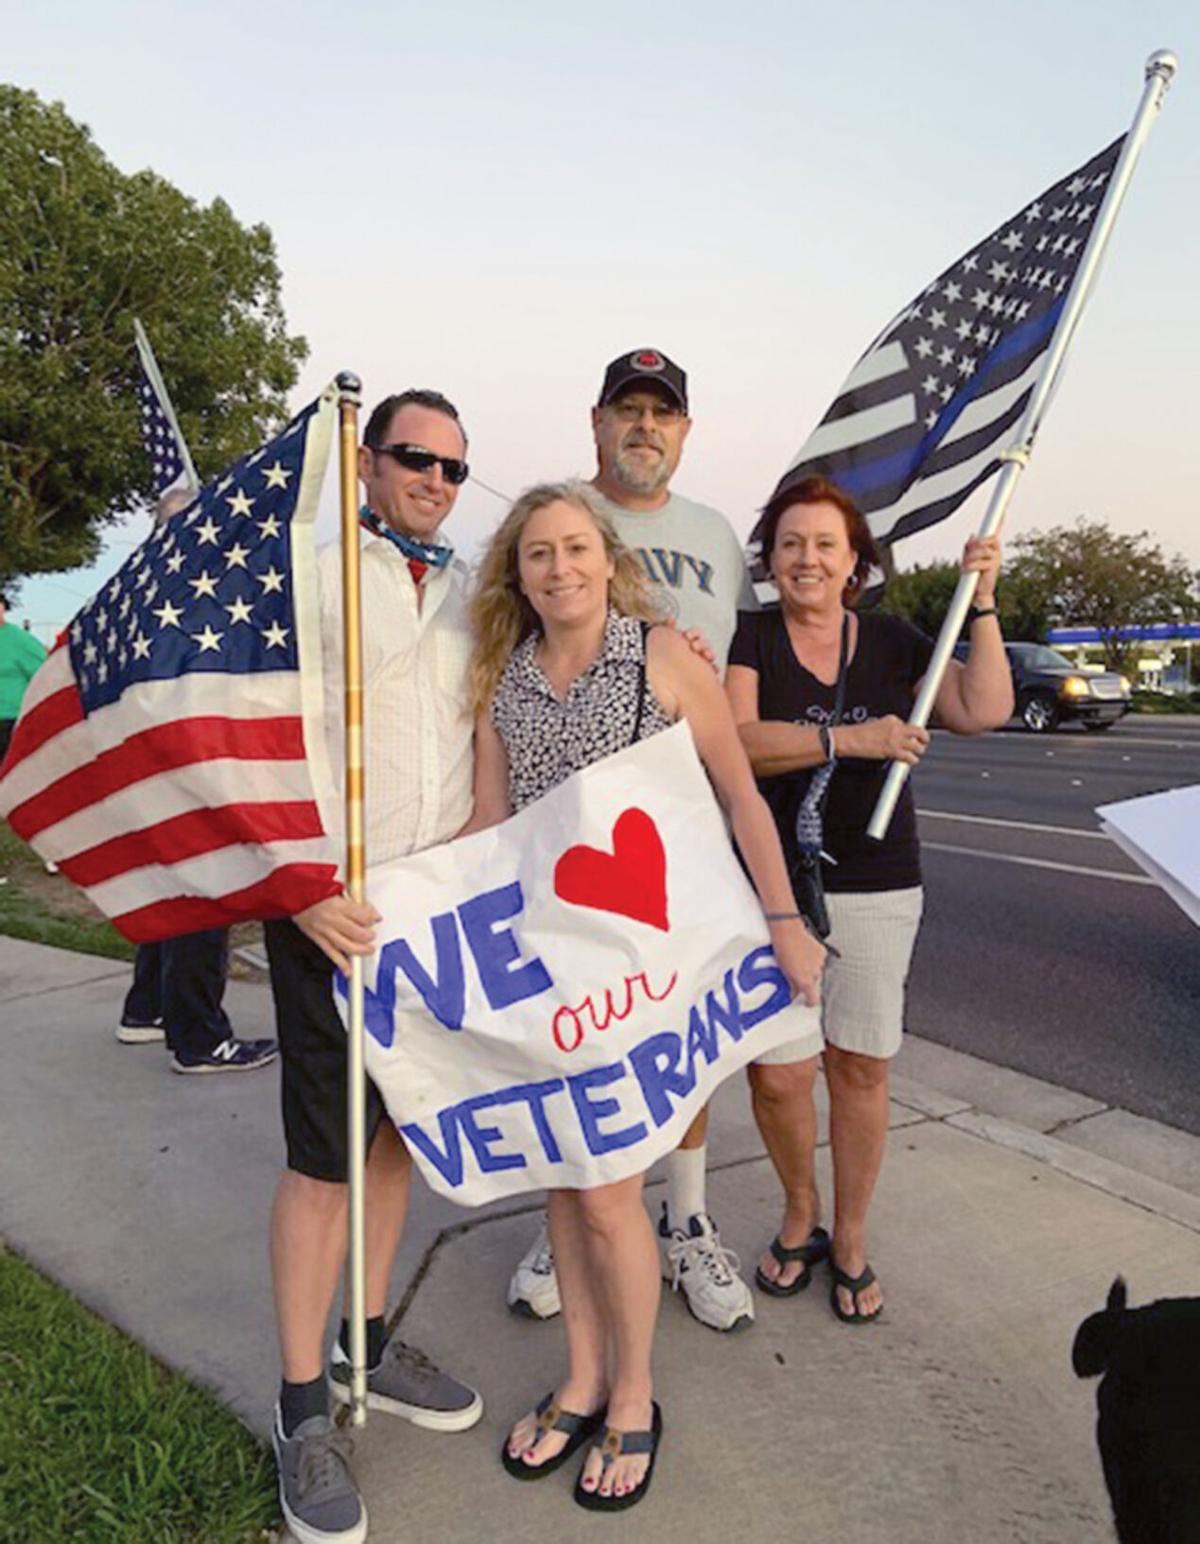 Rally supports those in public service